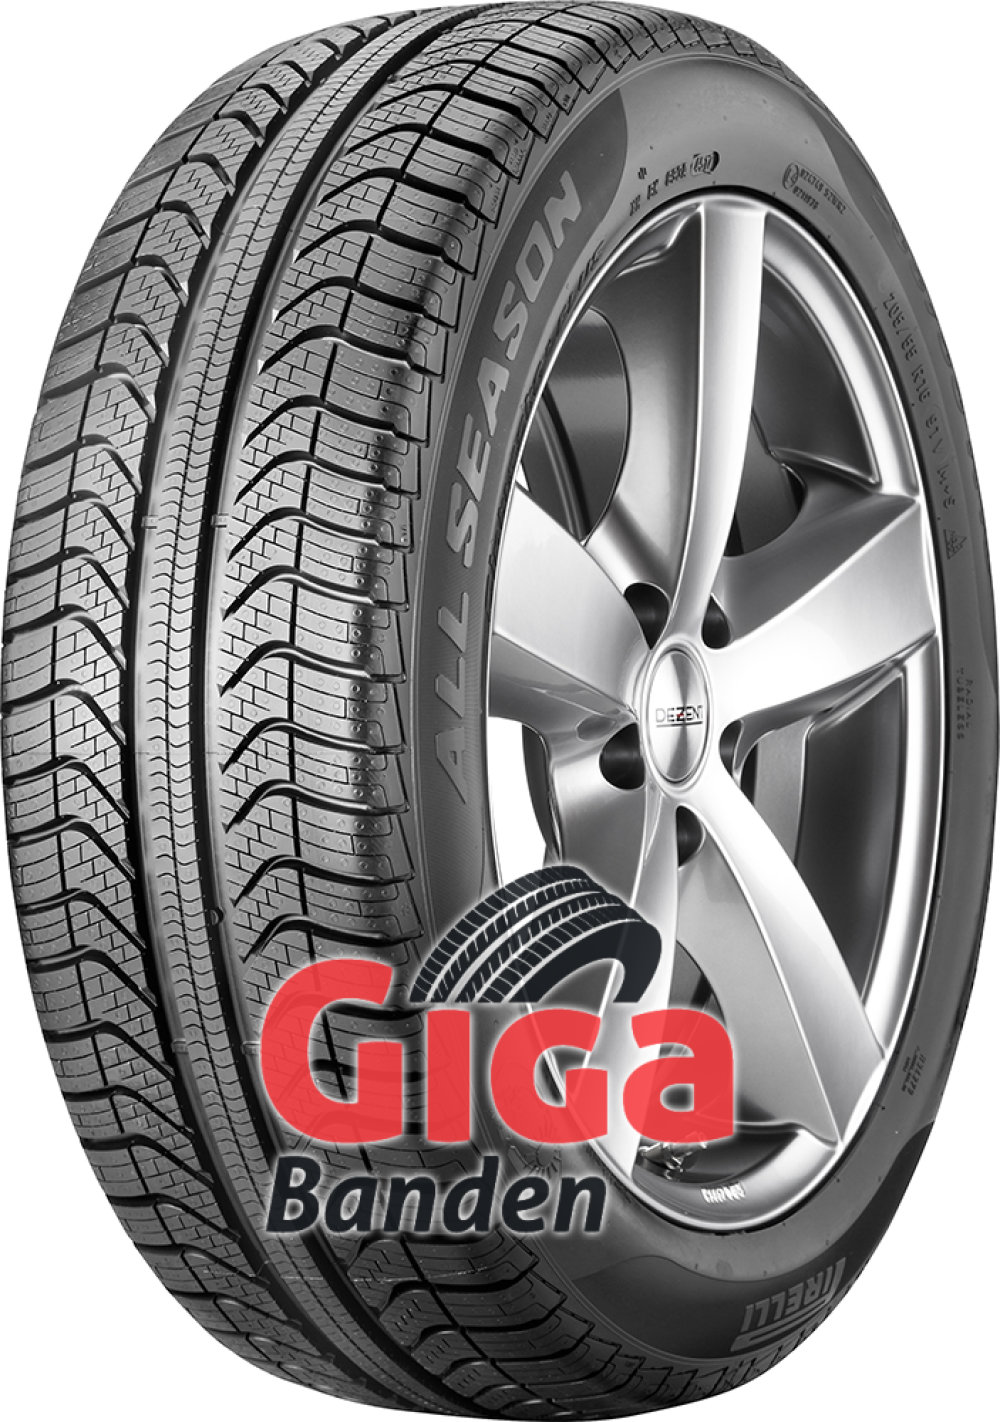 Pirelli Cinturato All Season Plus ( 205/50 R17 93W XL )